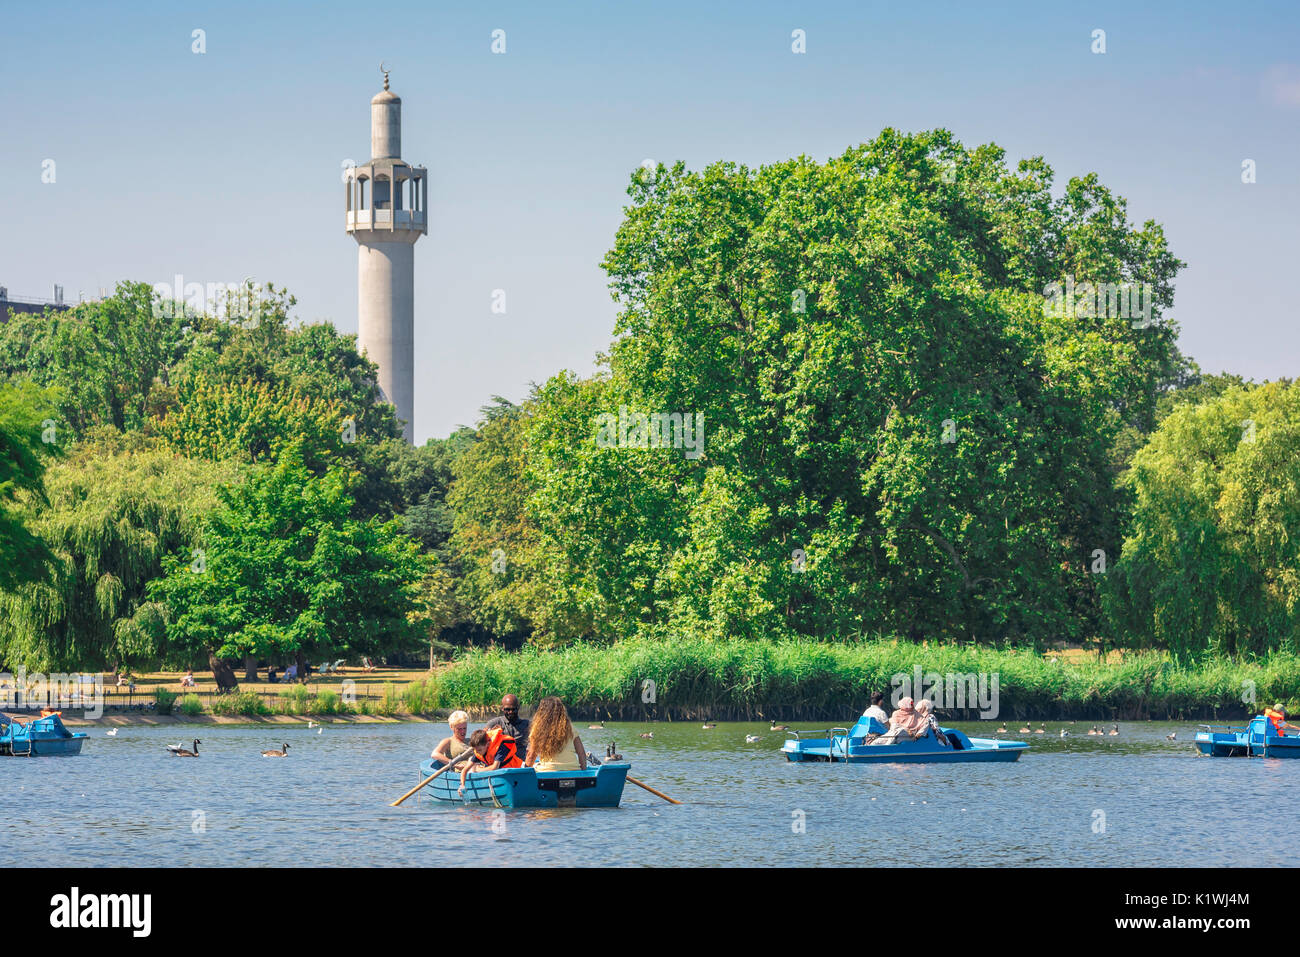 Regent's Park London, tourists in boats enjoy a summer afternoon on the boating lake in Regent's Park, London, UK. Stock Photo